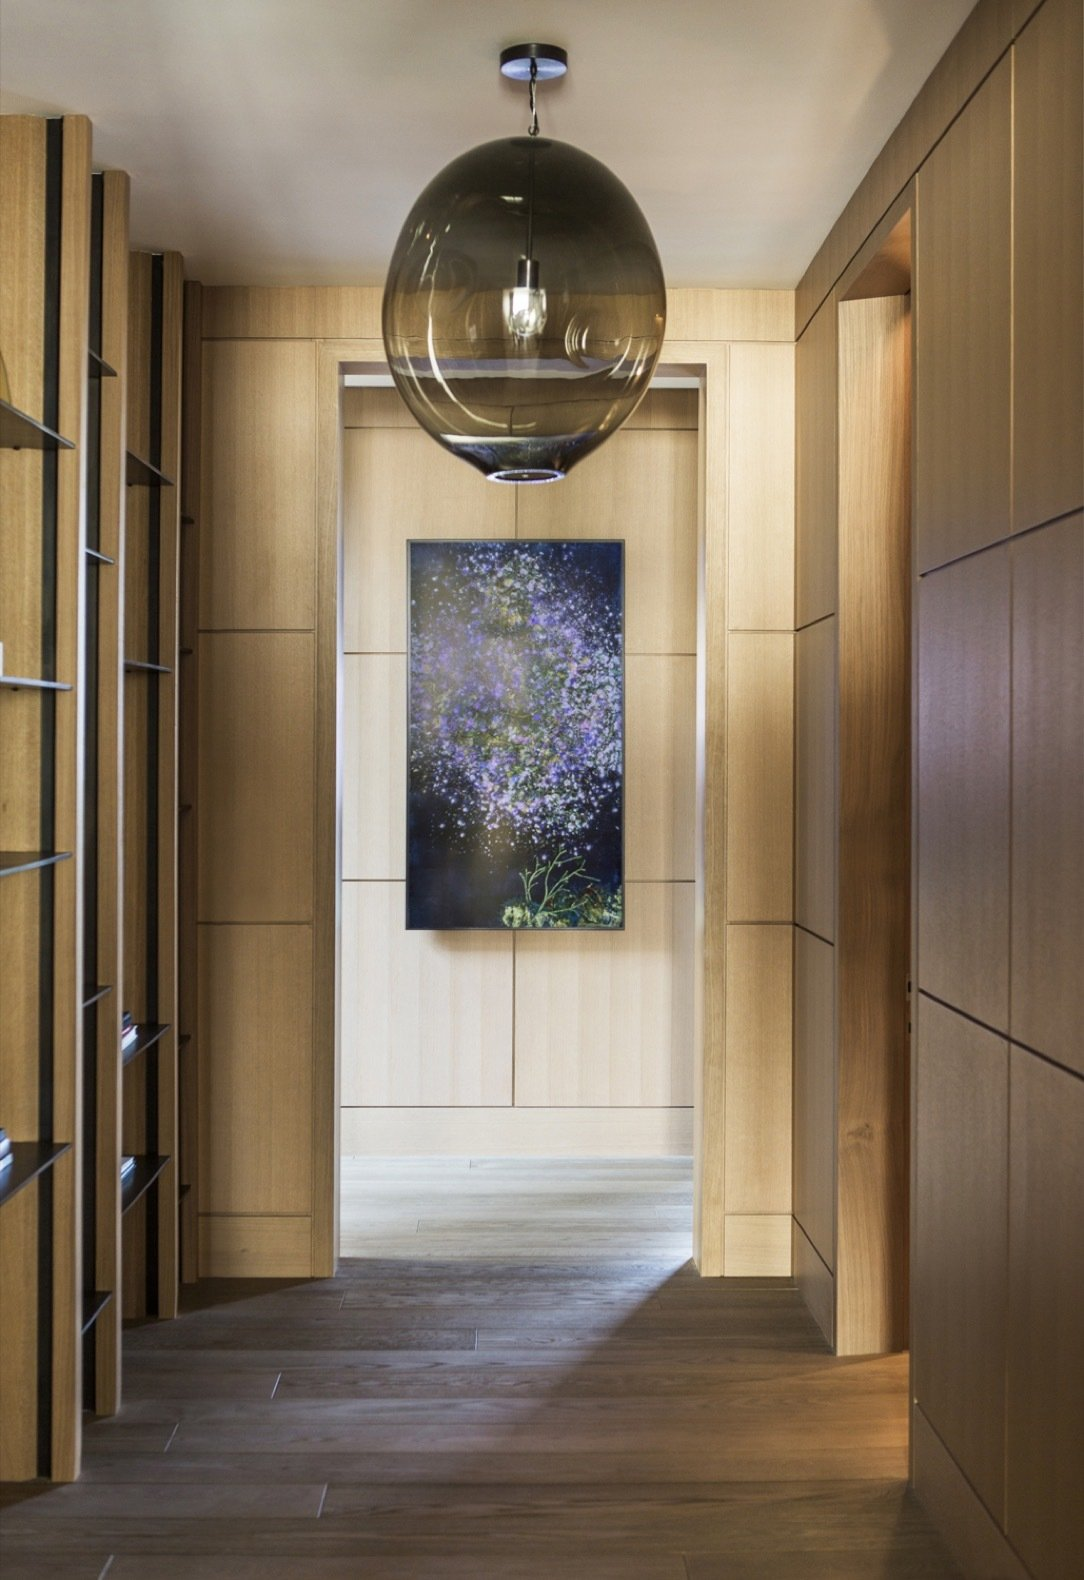 Hallway and Medium Hardwood Floor Rift-sawn European white-oak wall paneling and engineered European oak flooring lend warmth to the modern home.   Photo 6 of 14 in An Energy-Conscious Home Gets Woven Into a Waterfront Landscape